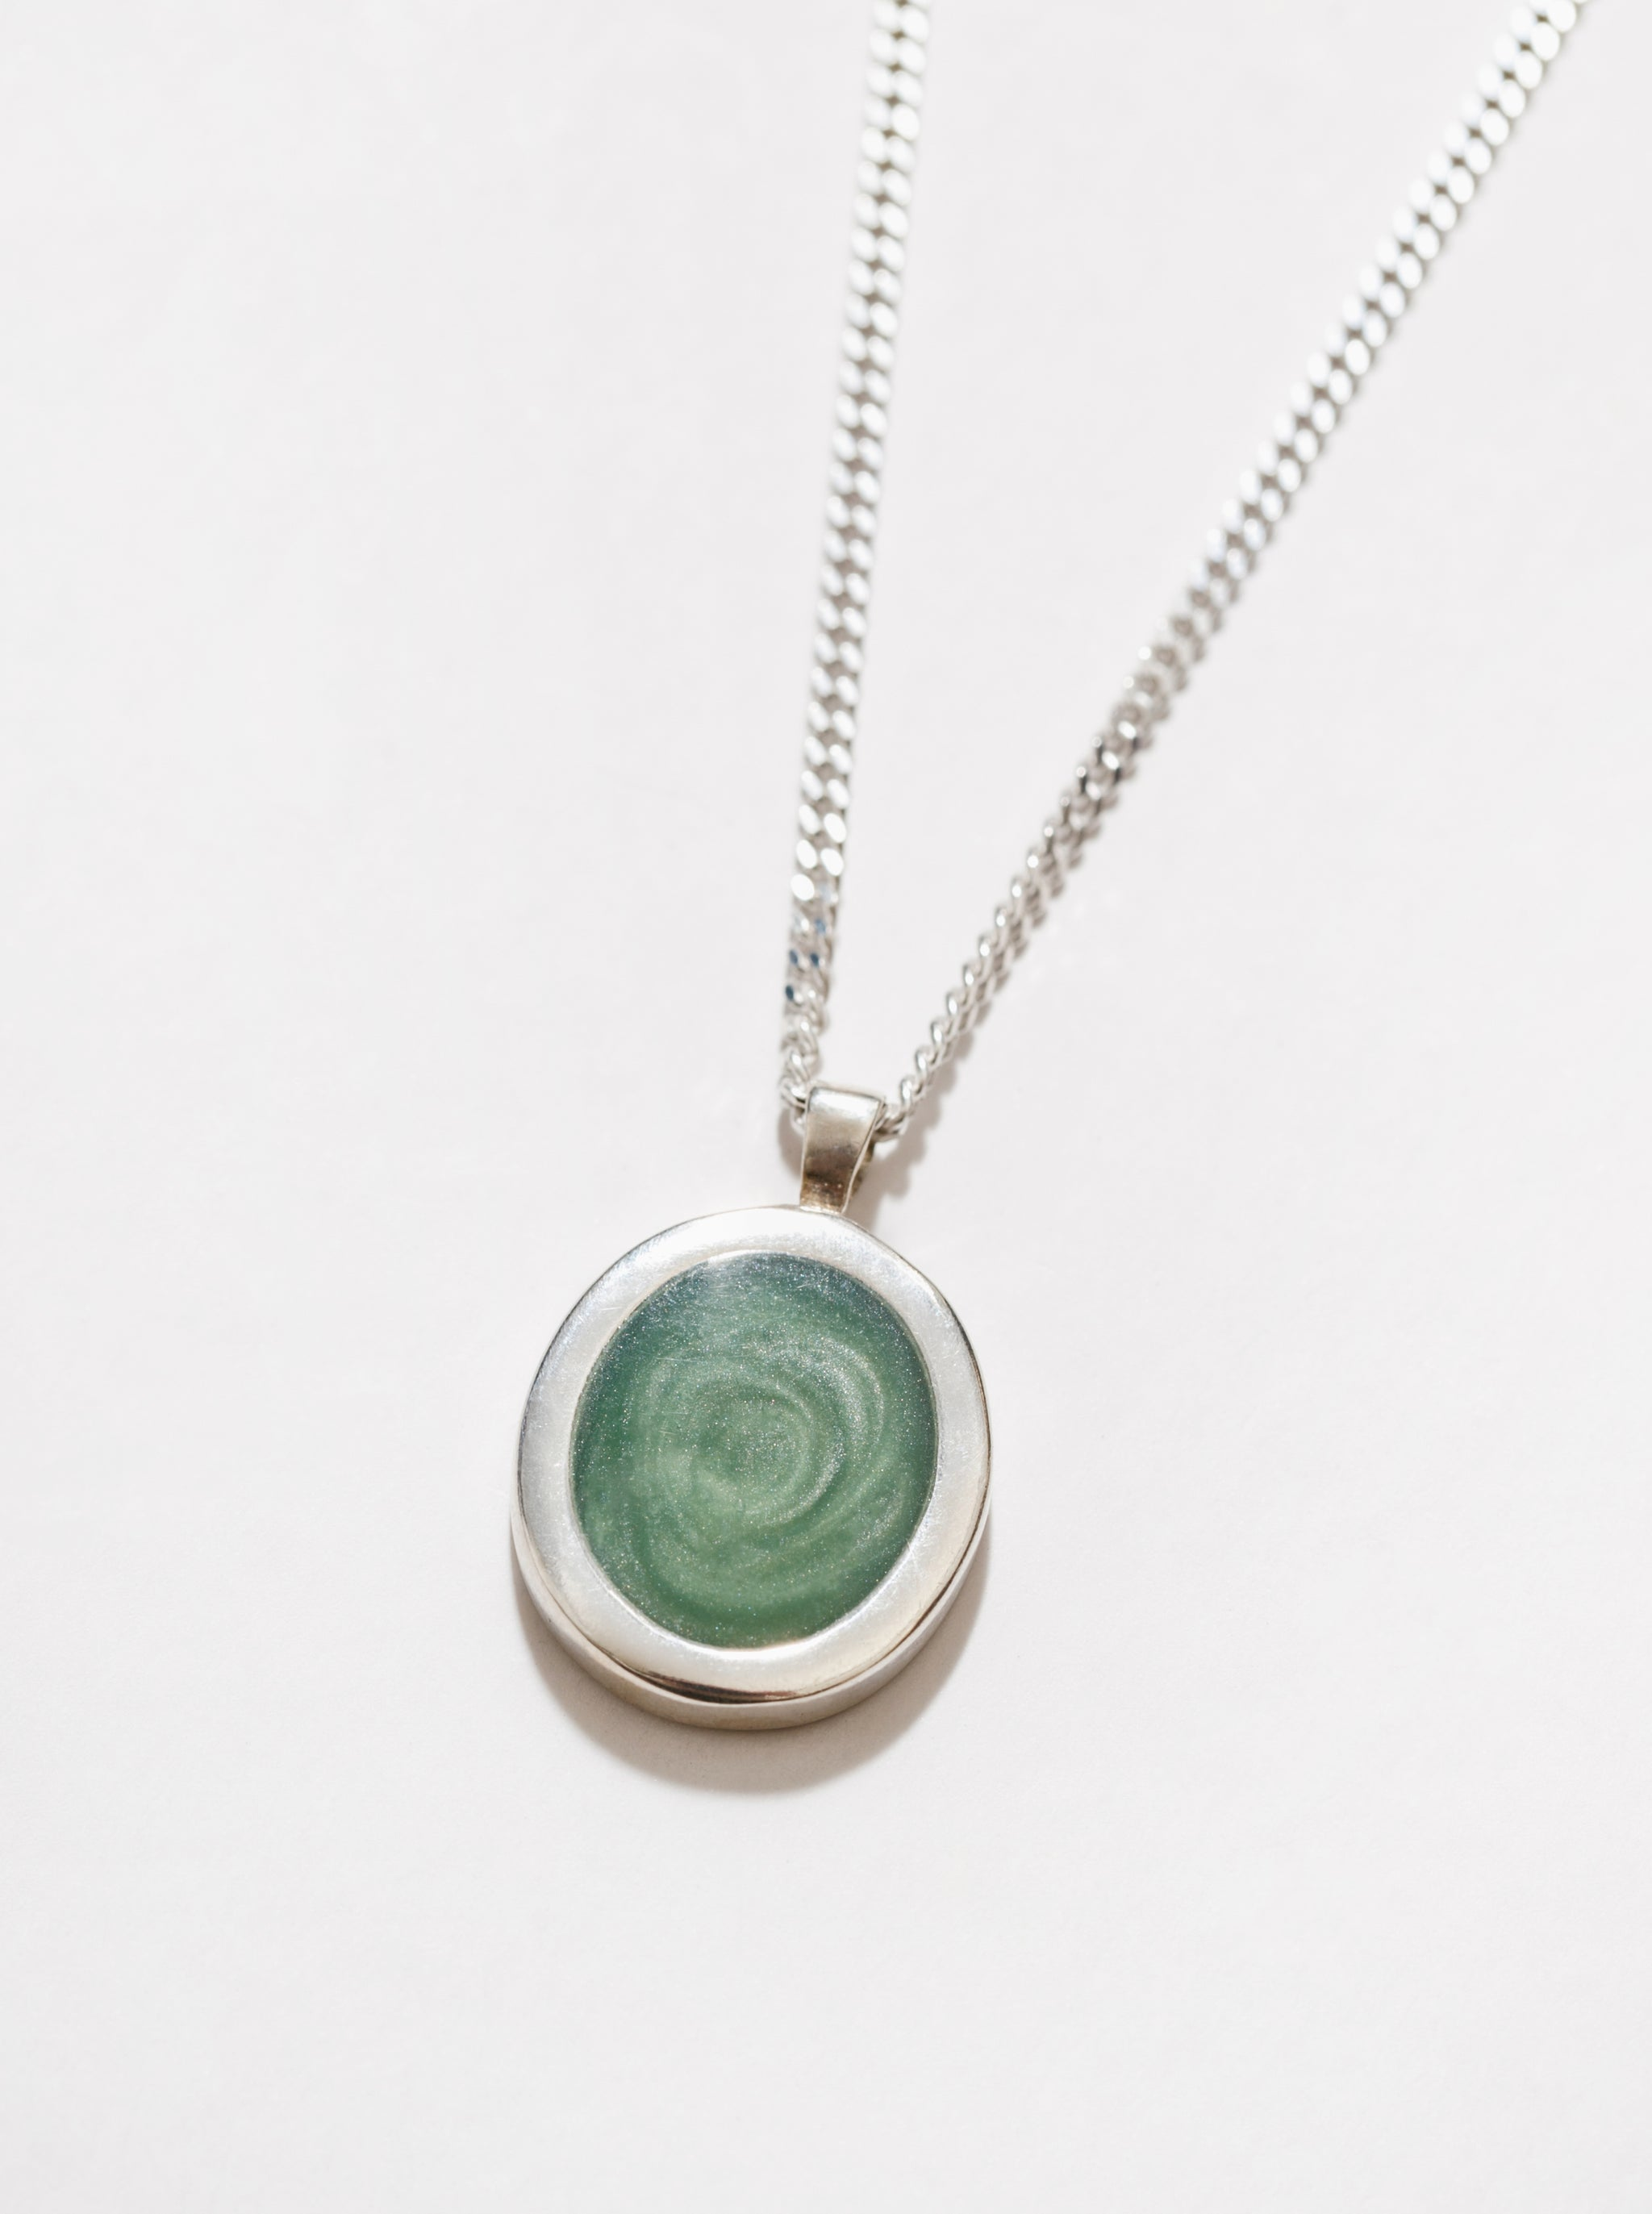 Tosh Necklace in Green and Sterling Silver